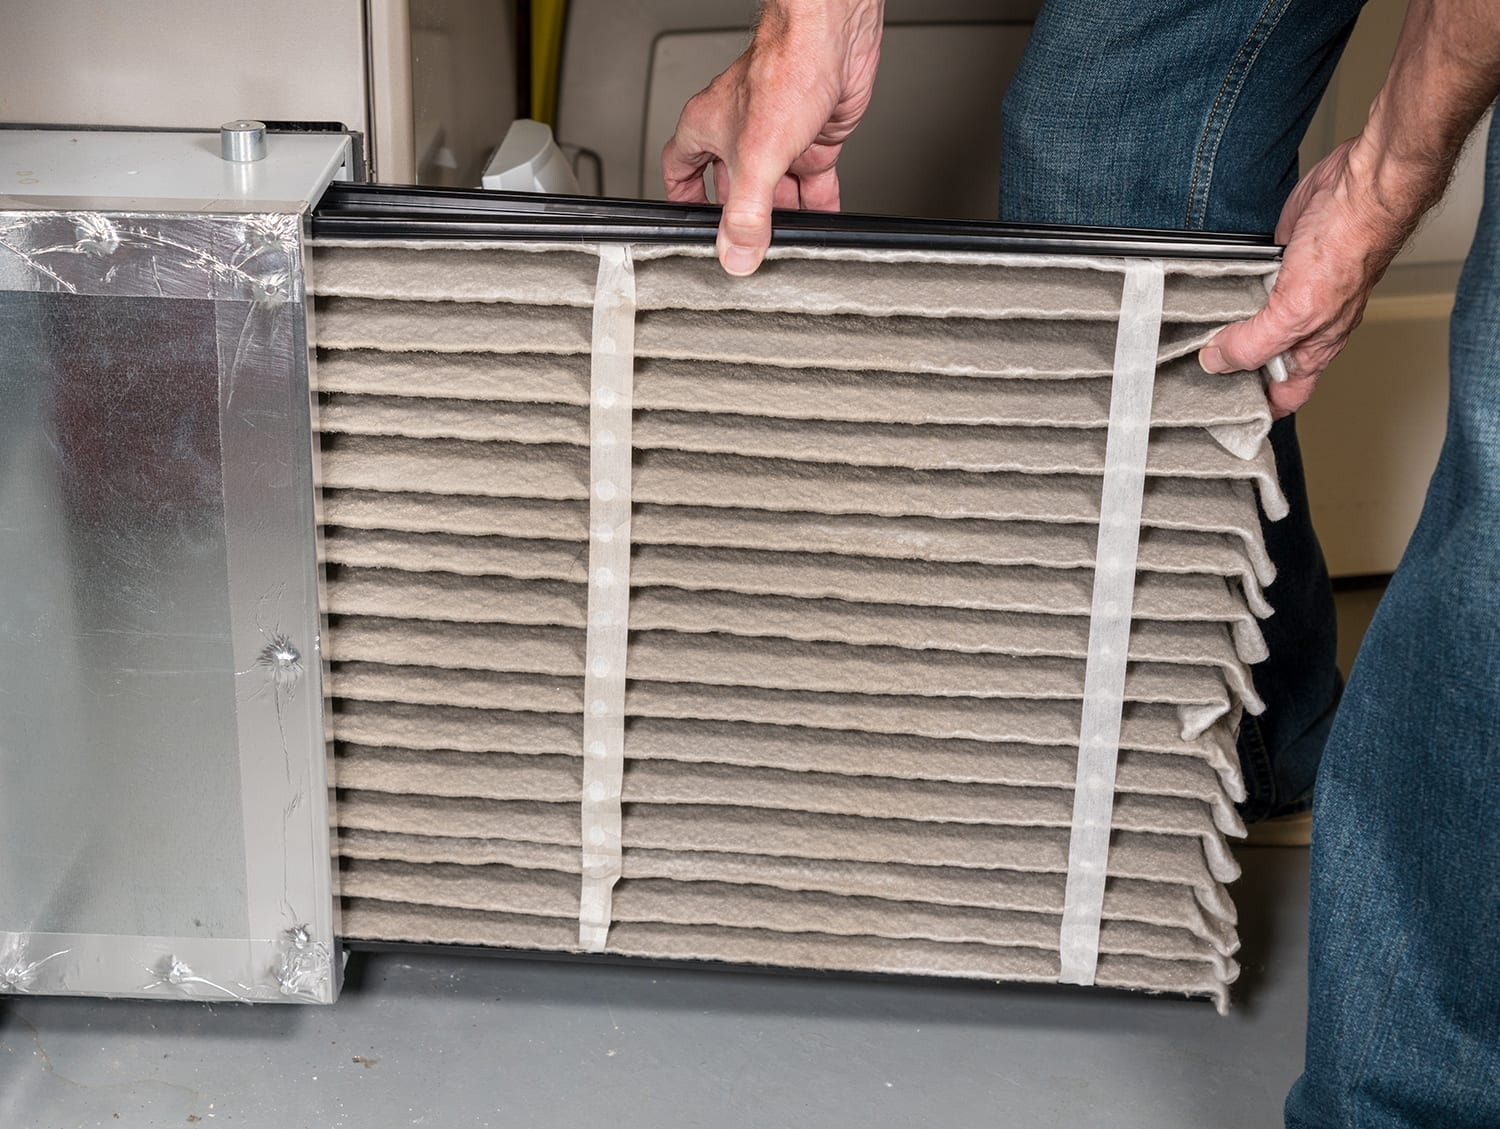 Change air filter - Ressler & Mateer - HVAC and Plumbing company near Lancaster, PA>